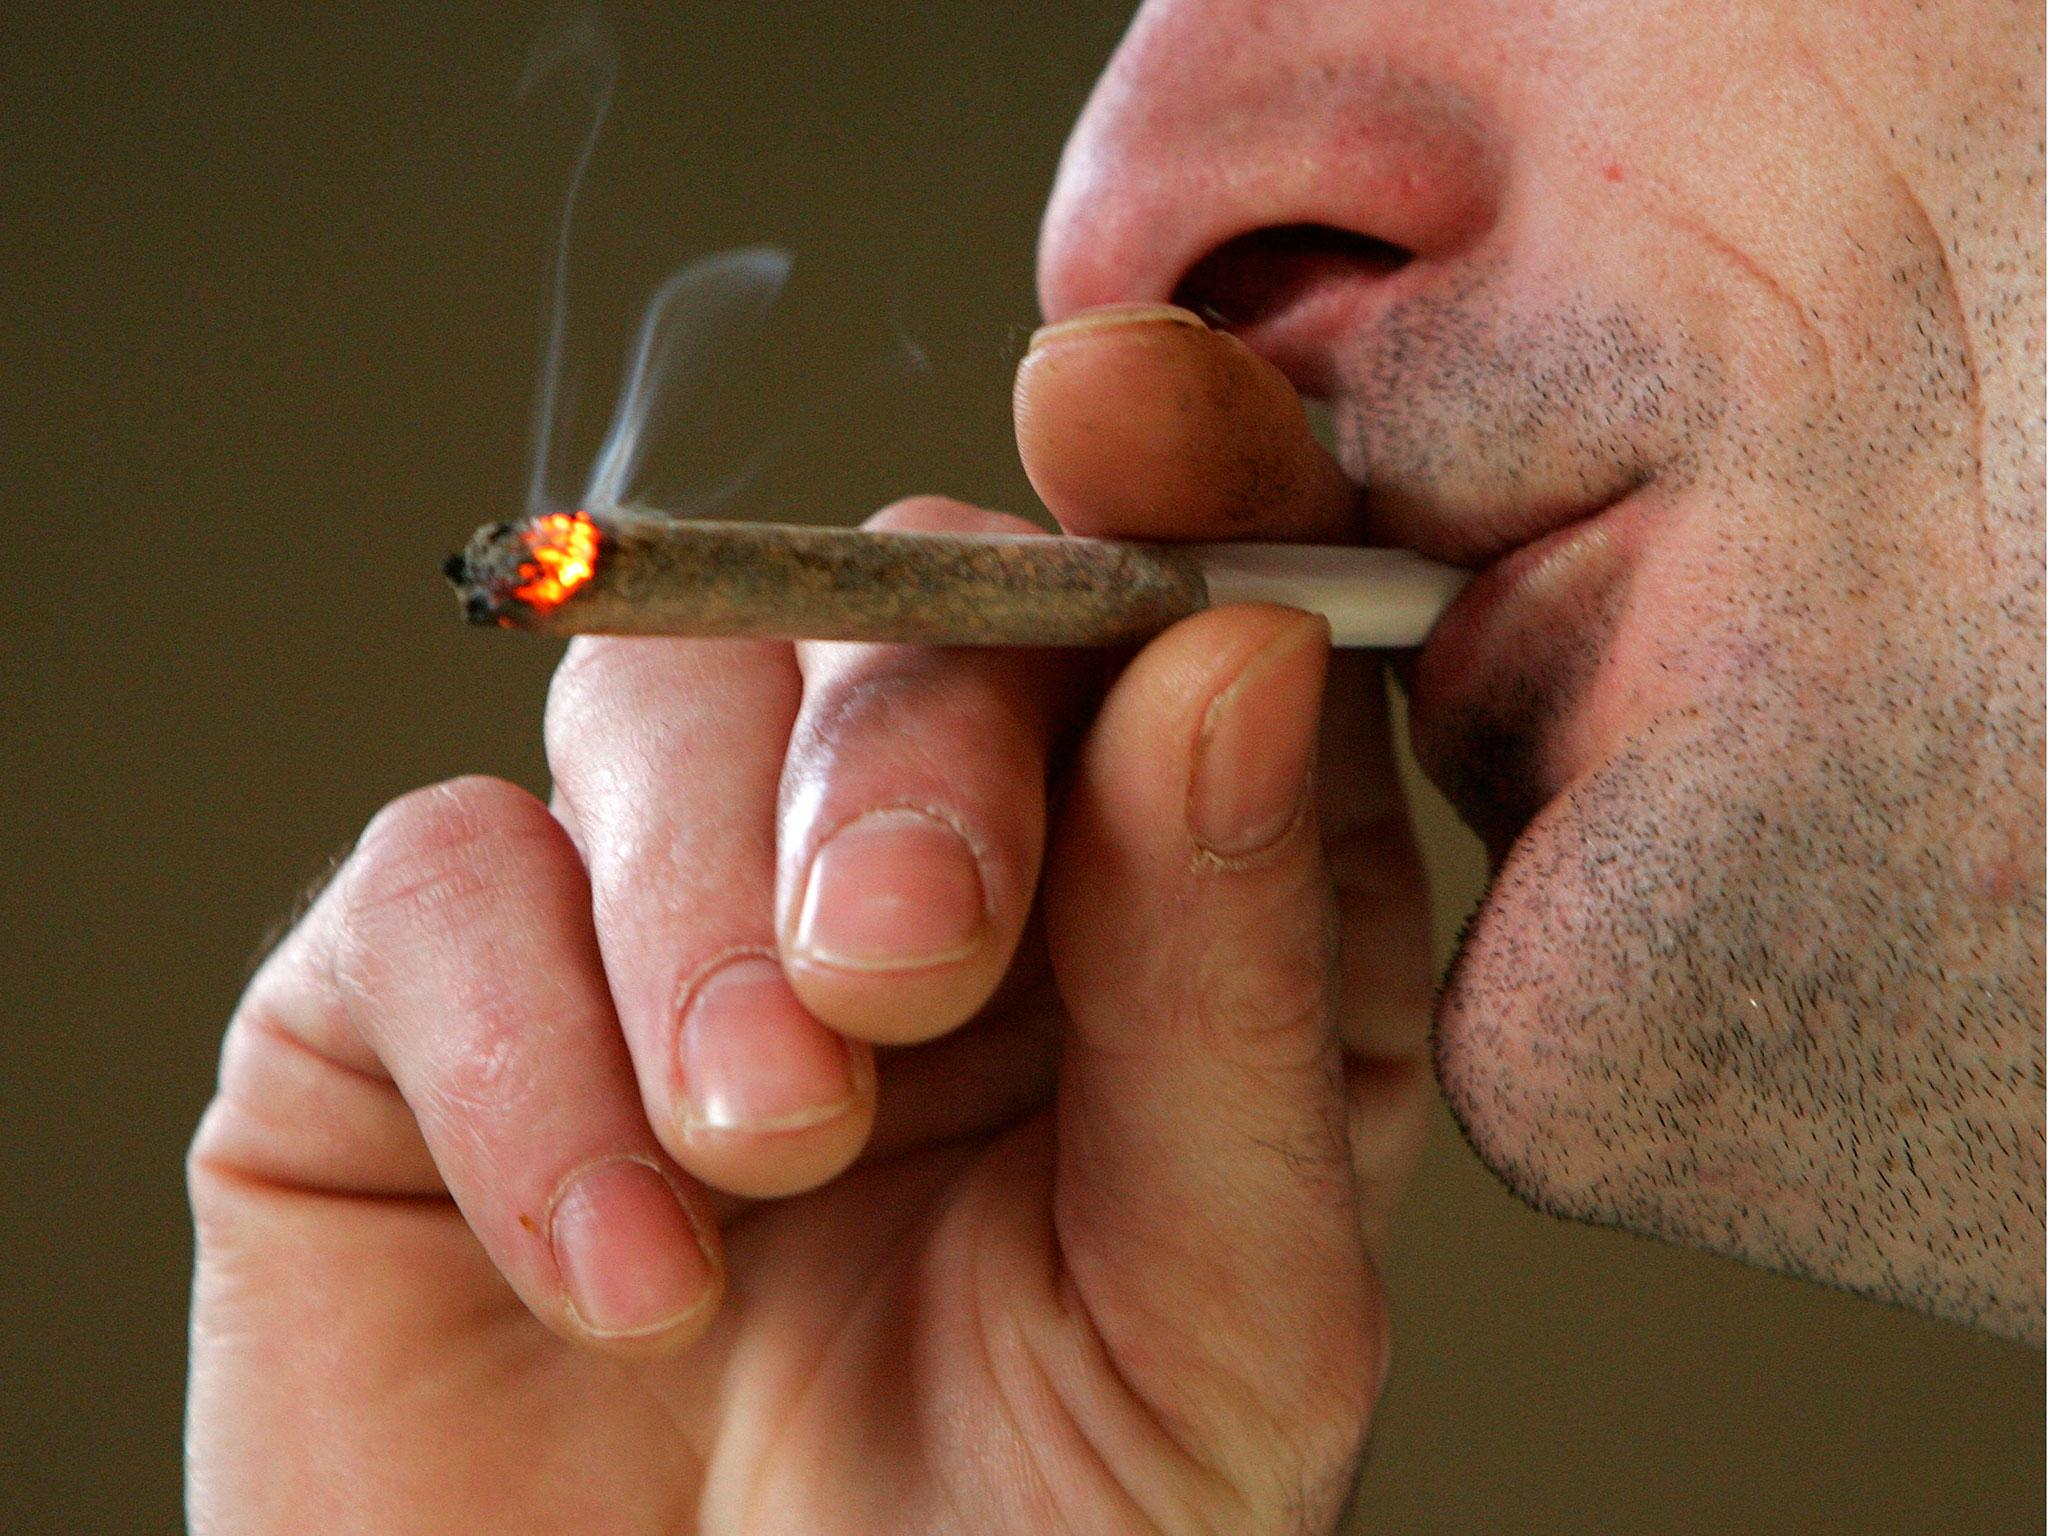 Dagga may be legal now, but nyaope-smoking boys are against it